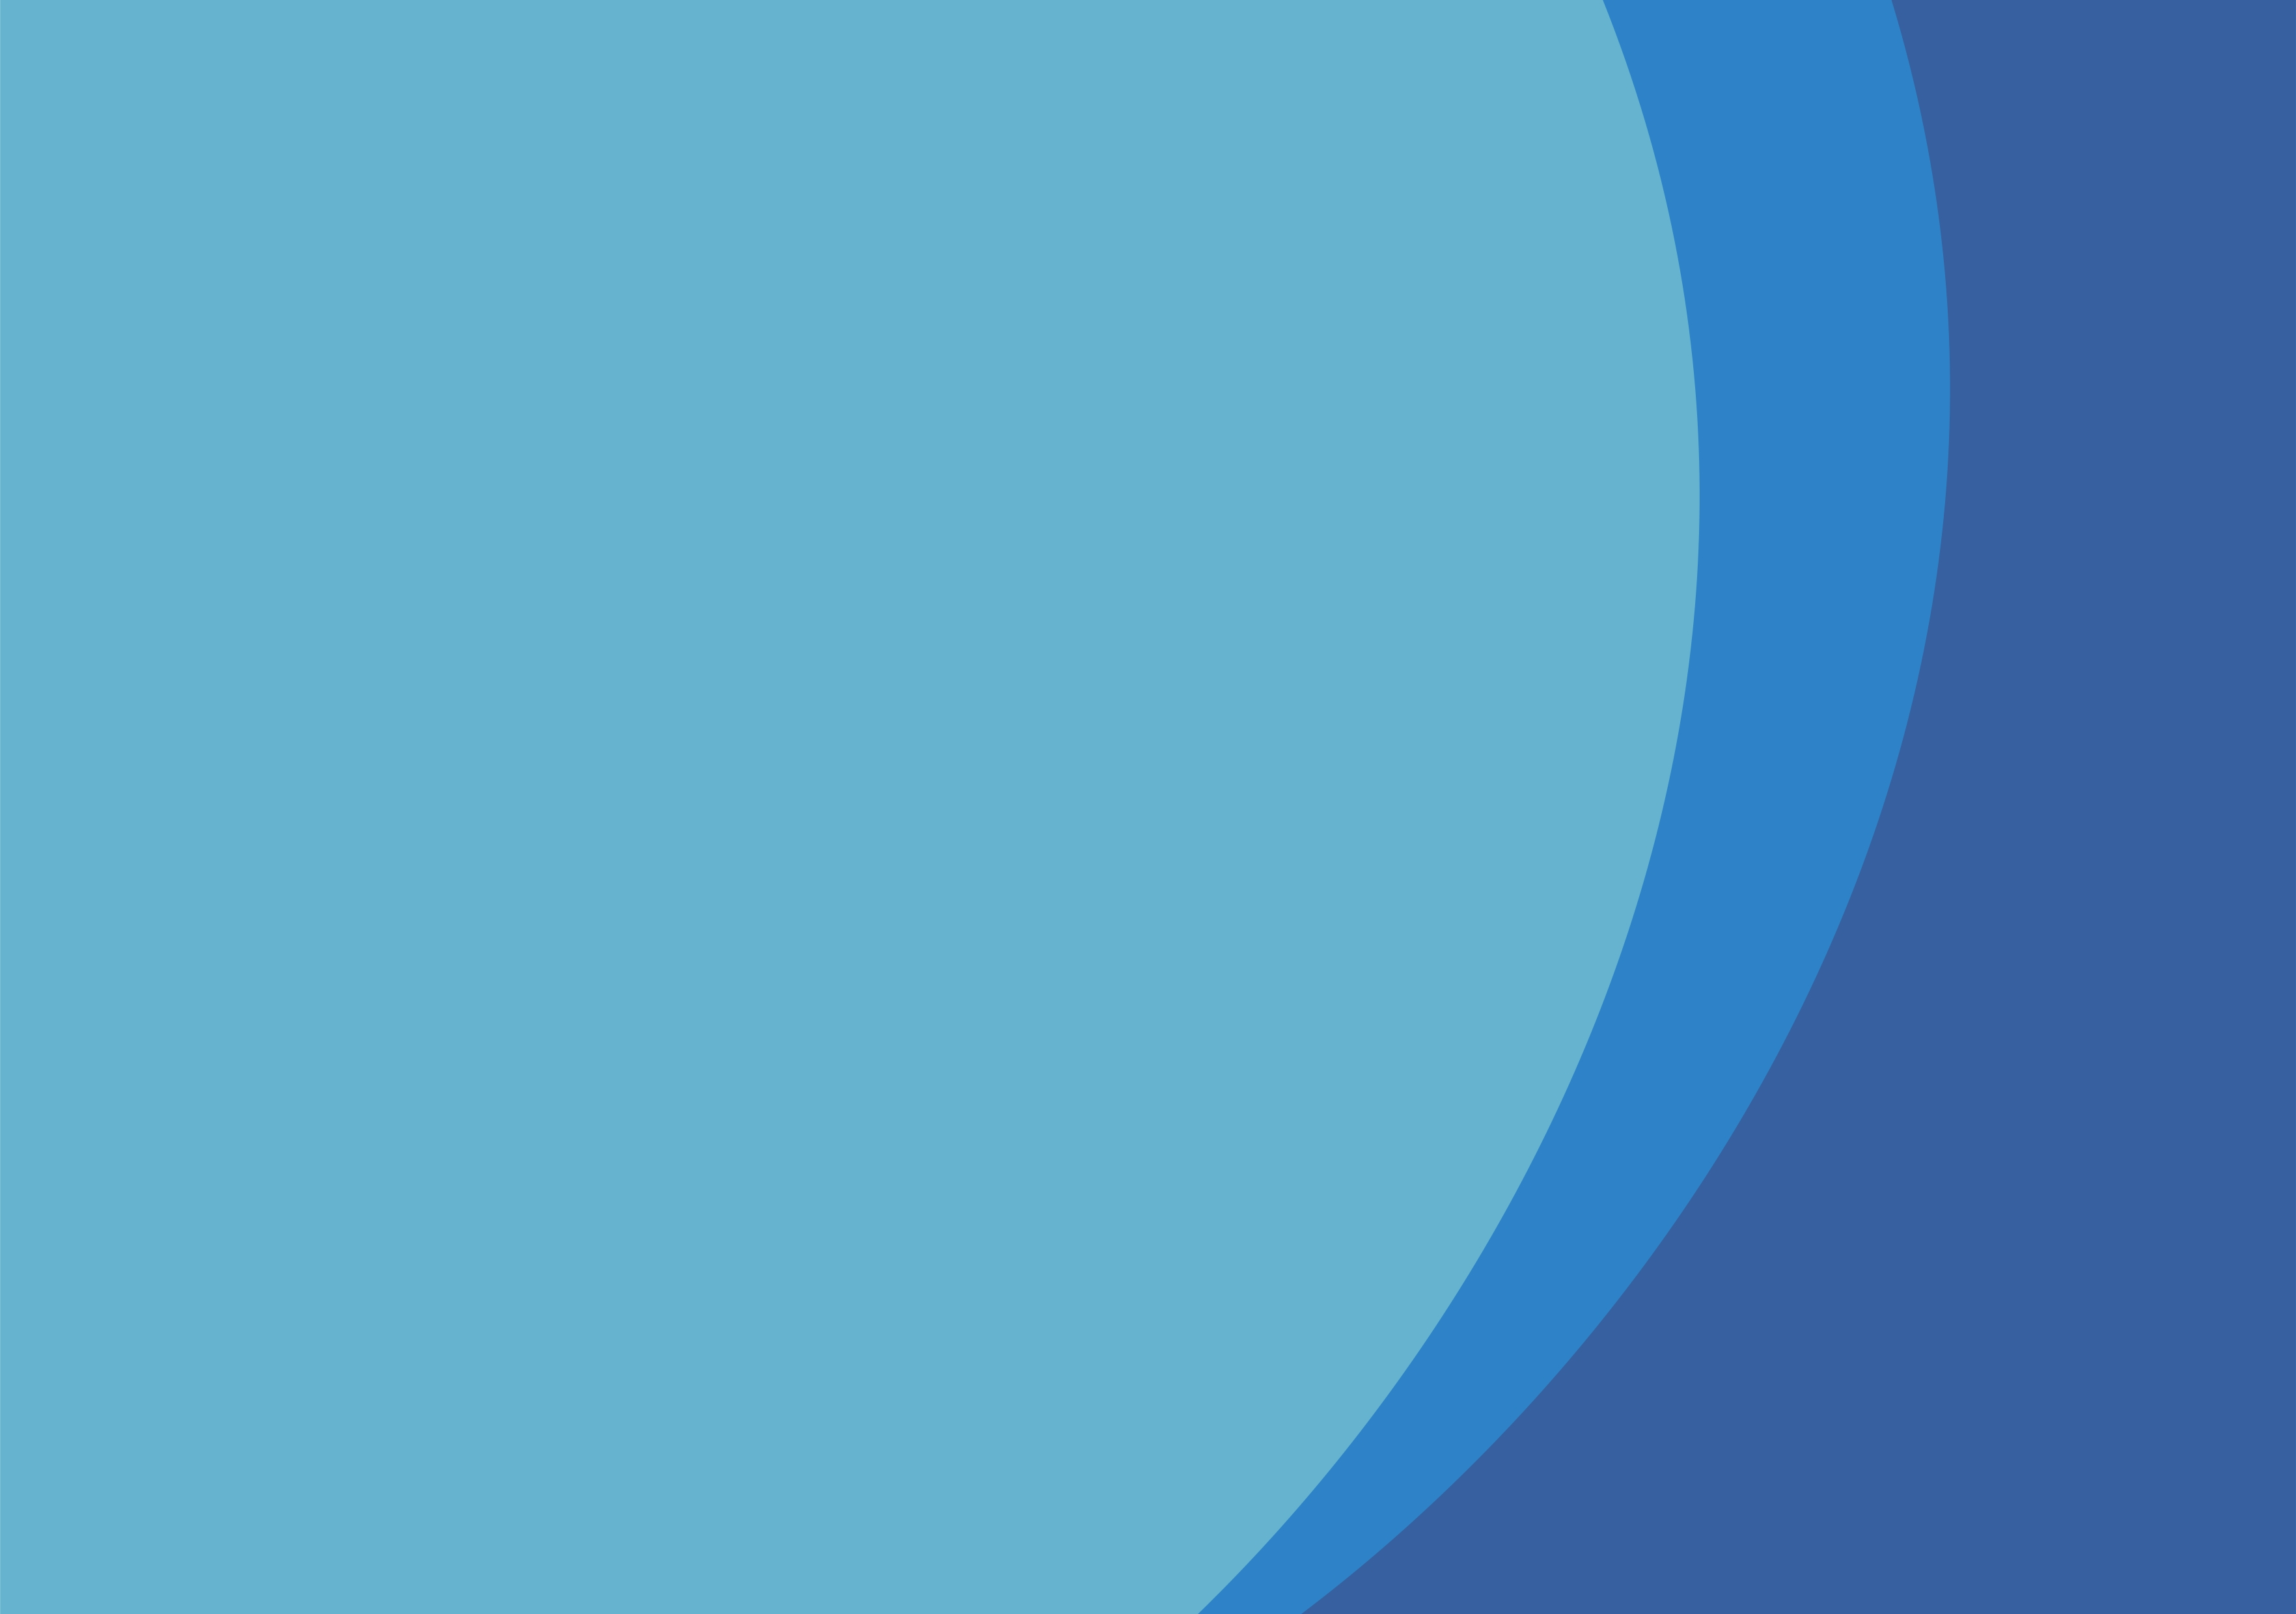 Blue Background Clipart.